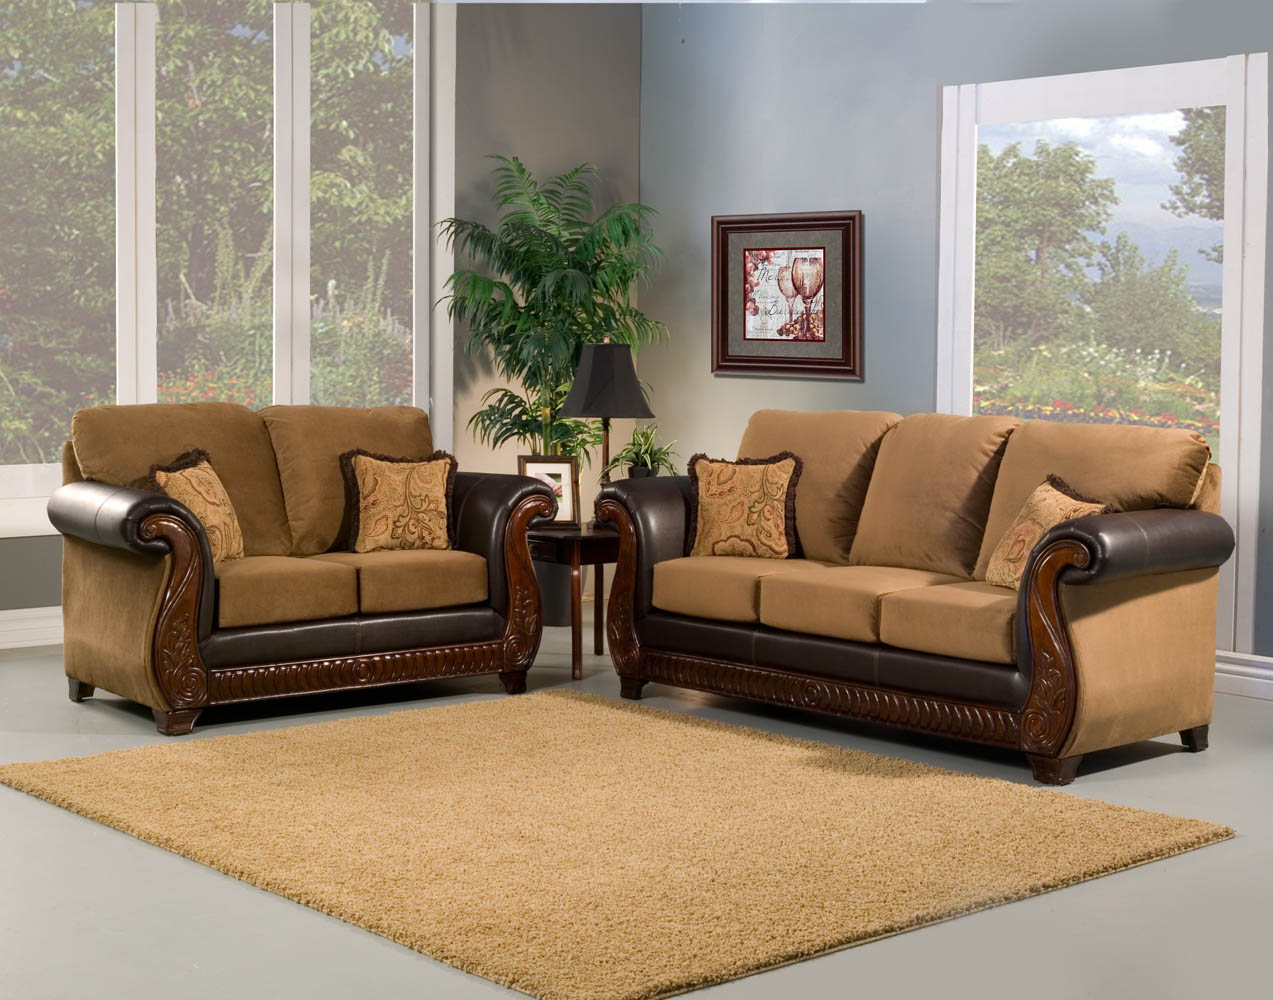 2 piece tan sofa set with wood decoration for Decoraciones para salas modernas